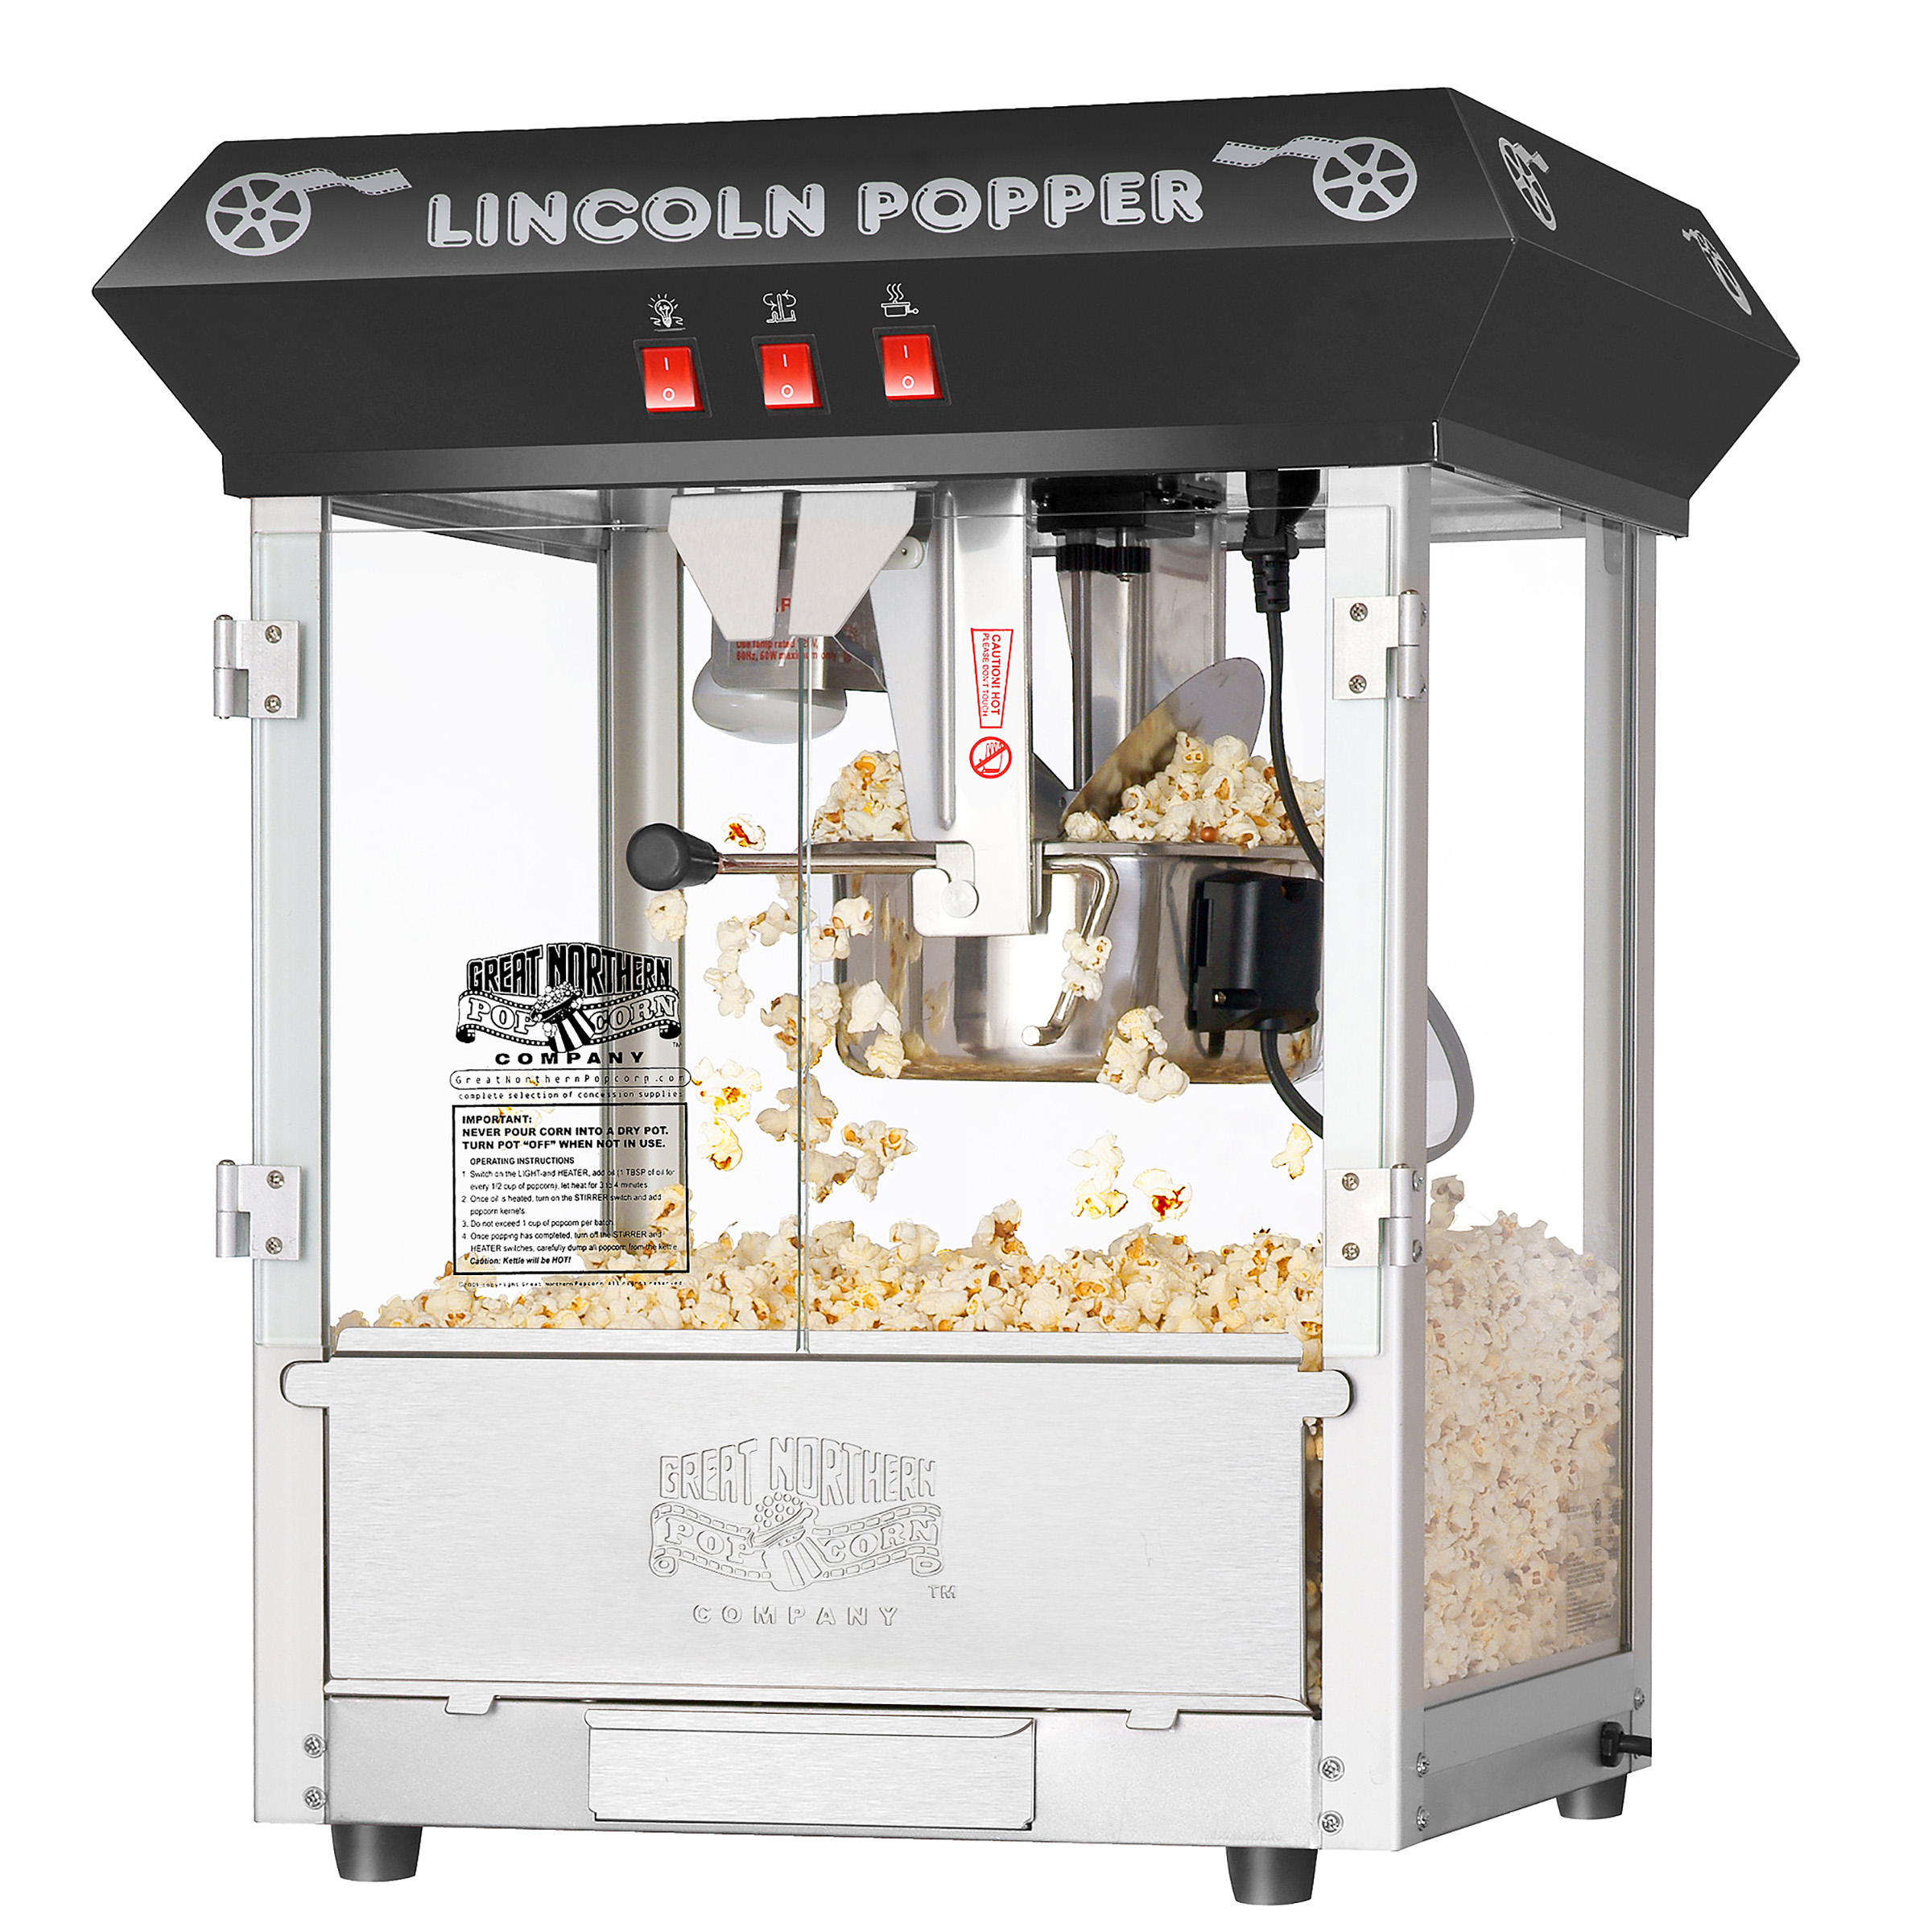 Black 8oz Antique Countertop Lincoln Popcorn Popper Machine by Great Northern Popcorn